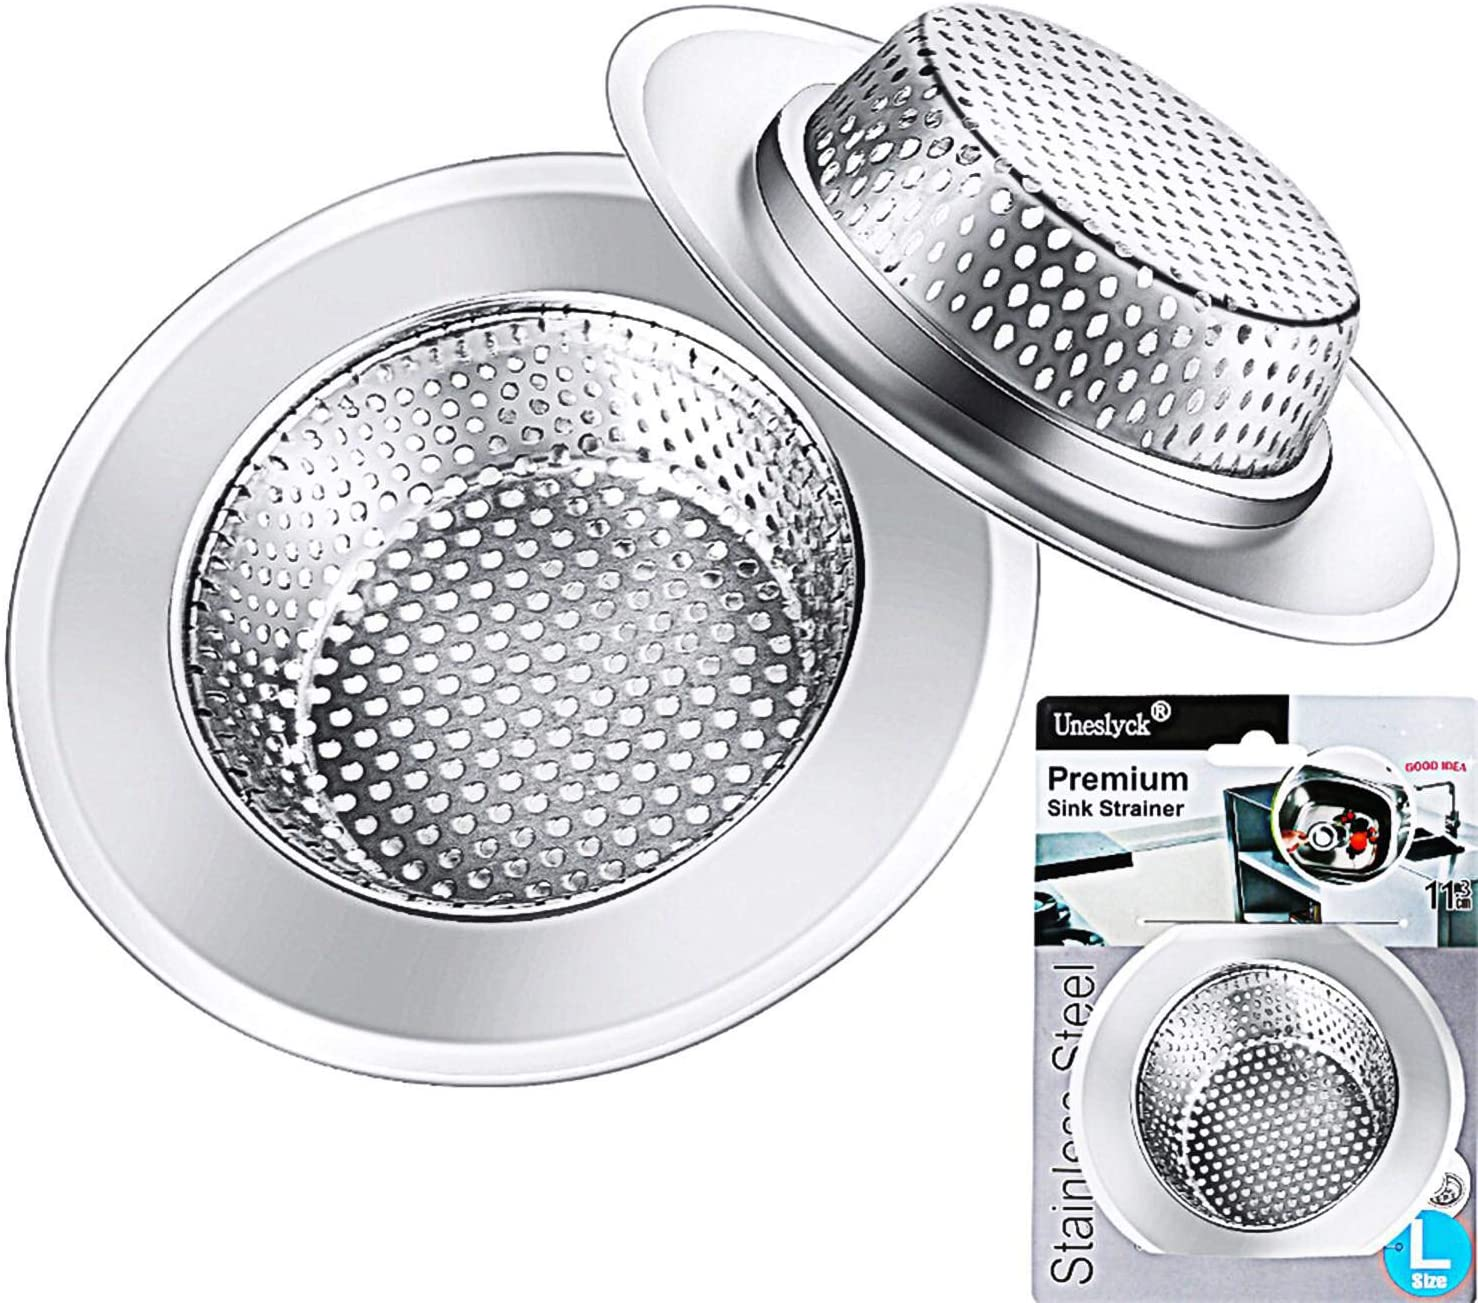 Kitchen Sink Strainer Basket Drain Catcher 2 Pack 4 5 Diameter Wide Rim Premium Stainless Steel Sink Disposal Stopper Anti Clogging Micro Perforation 2mm Holes Basket Drains Sieve Rust Free Amazon Com